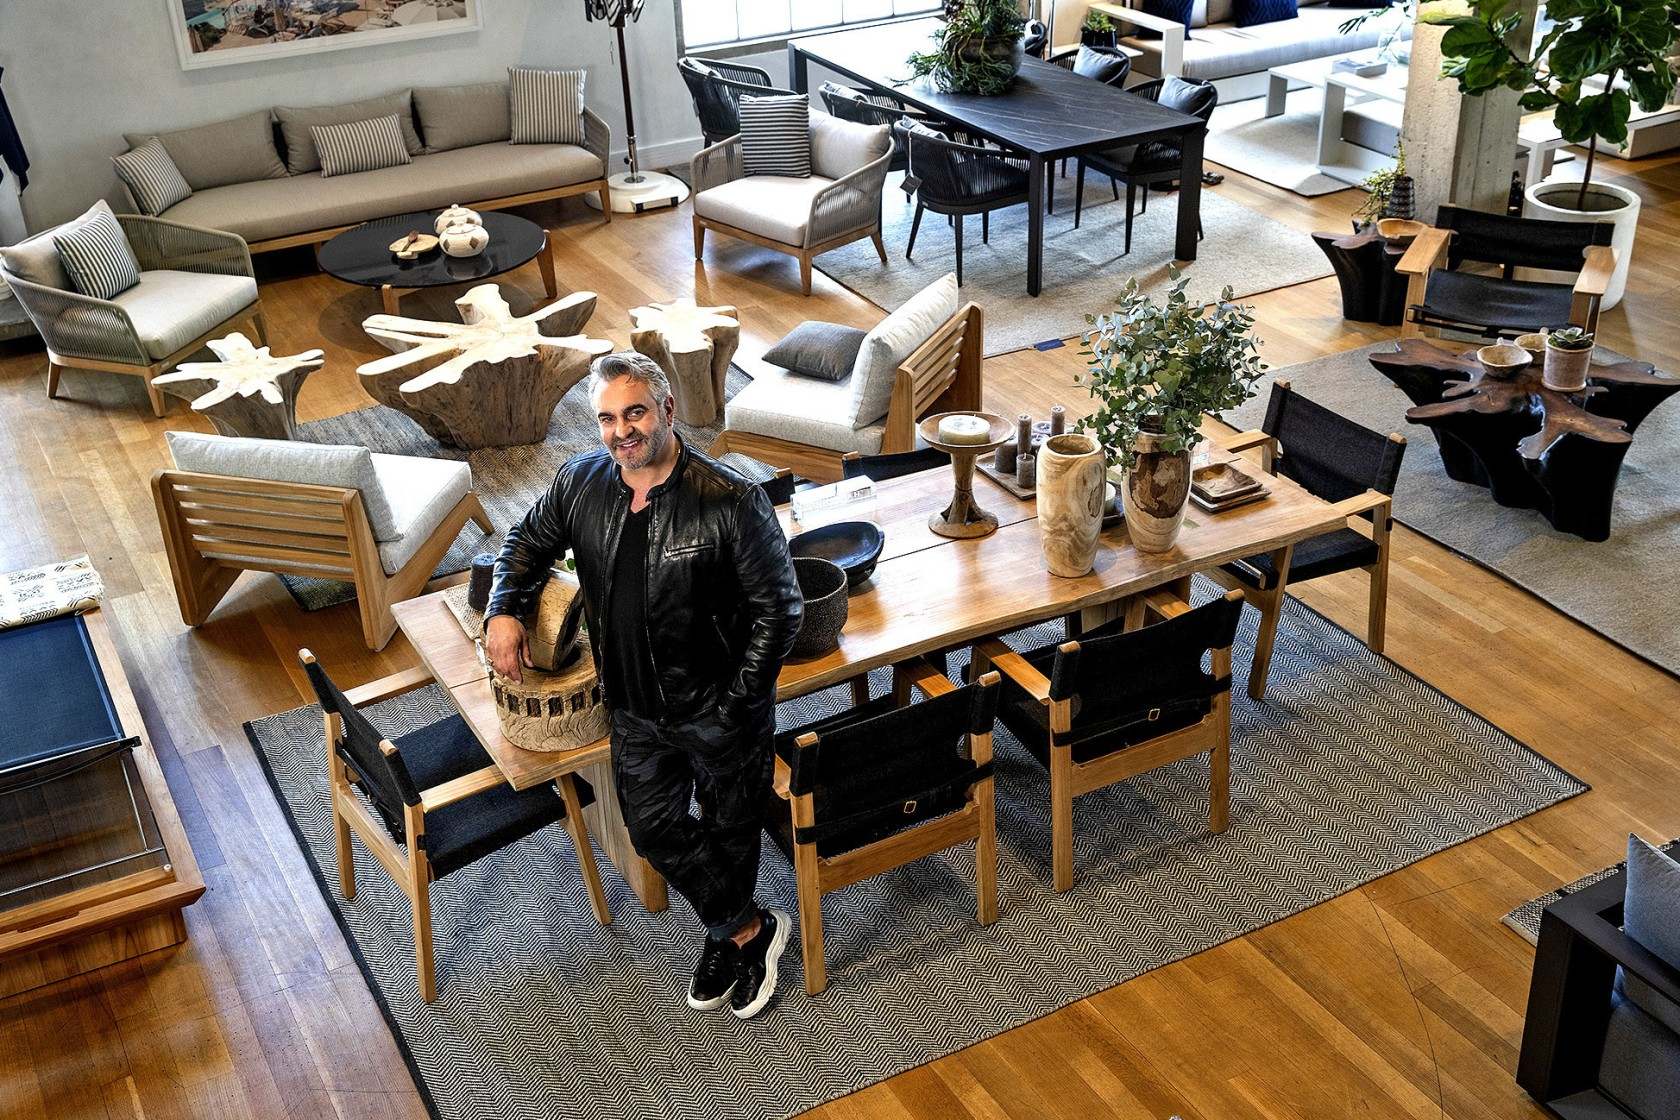 The 20 Most Famous Interior Designers In The Industry Right Now_2 most famous interior designers The 20 Most Famous Interior Designers In The Industry Right Now The 20 Most Famous Interior Designers In The Industry Right Now 2